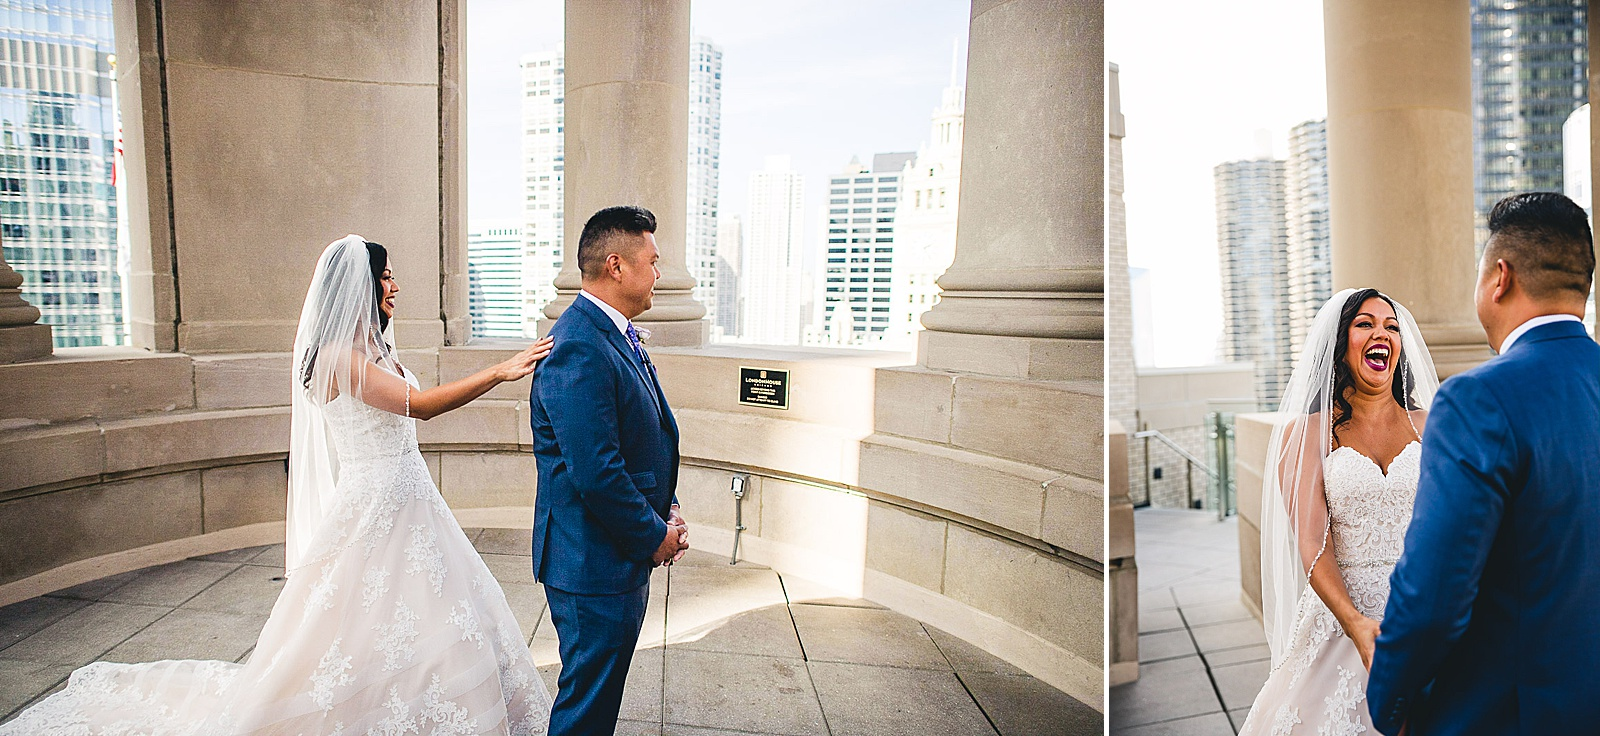 17 london house hotel first look - LondonHouse Wedding Photos // Mari + Kevin